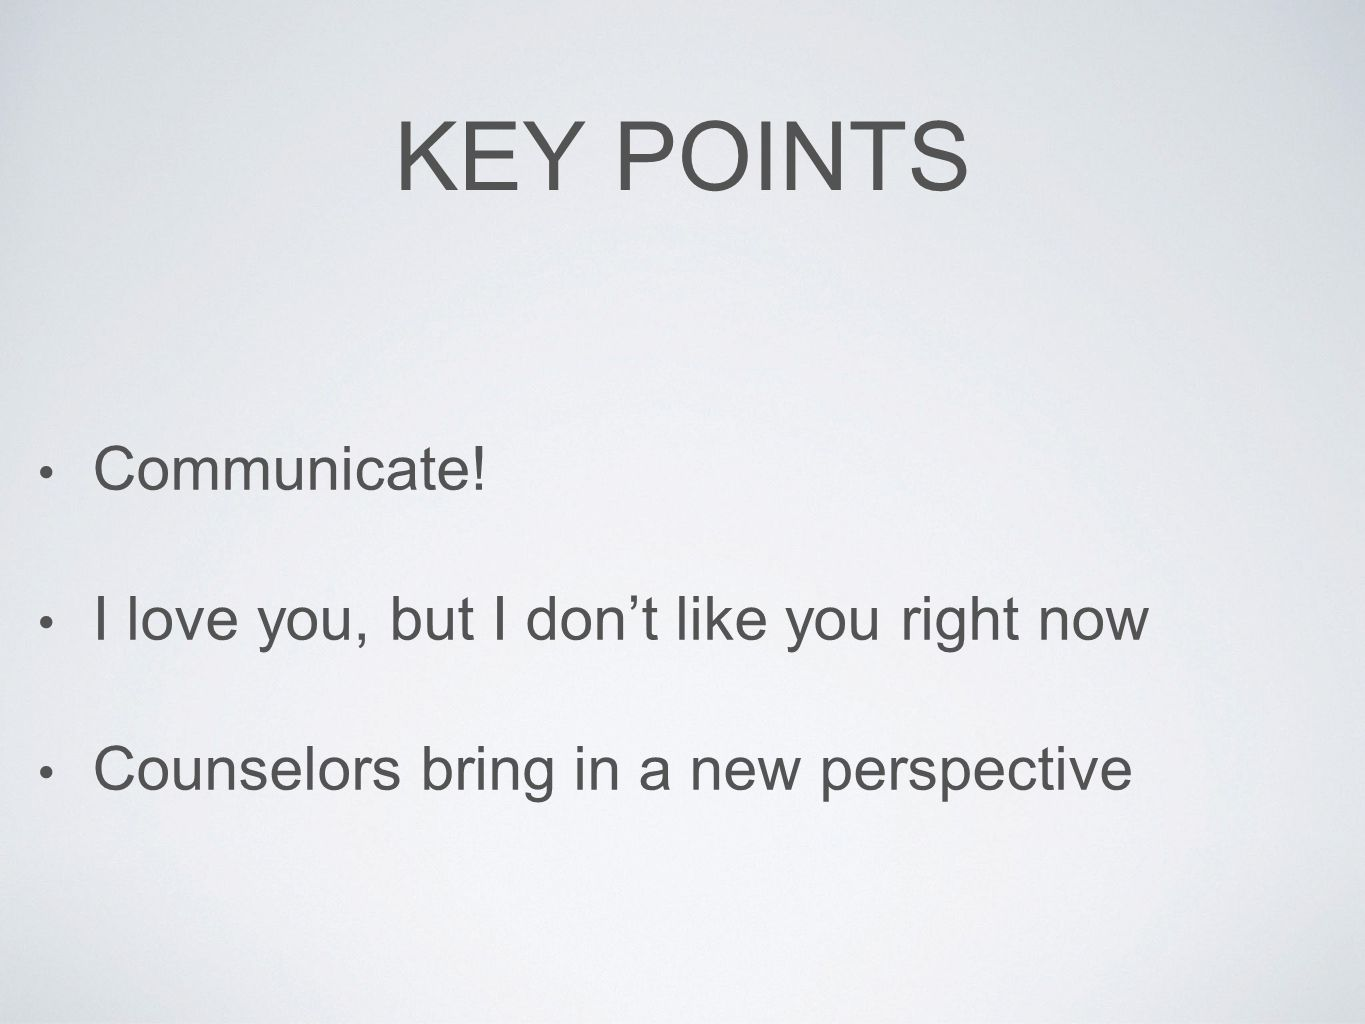 KEY POINTS Communicate! I love you, but I don't like you right now Counselors bring in a new perspective